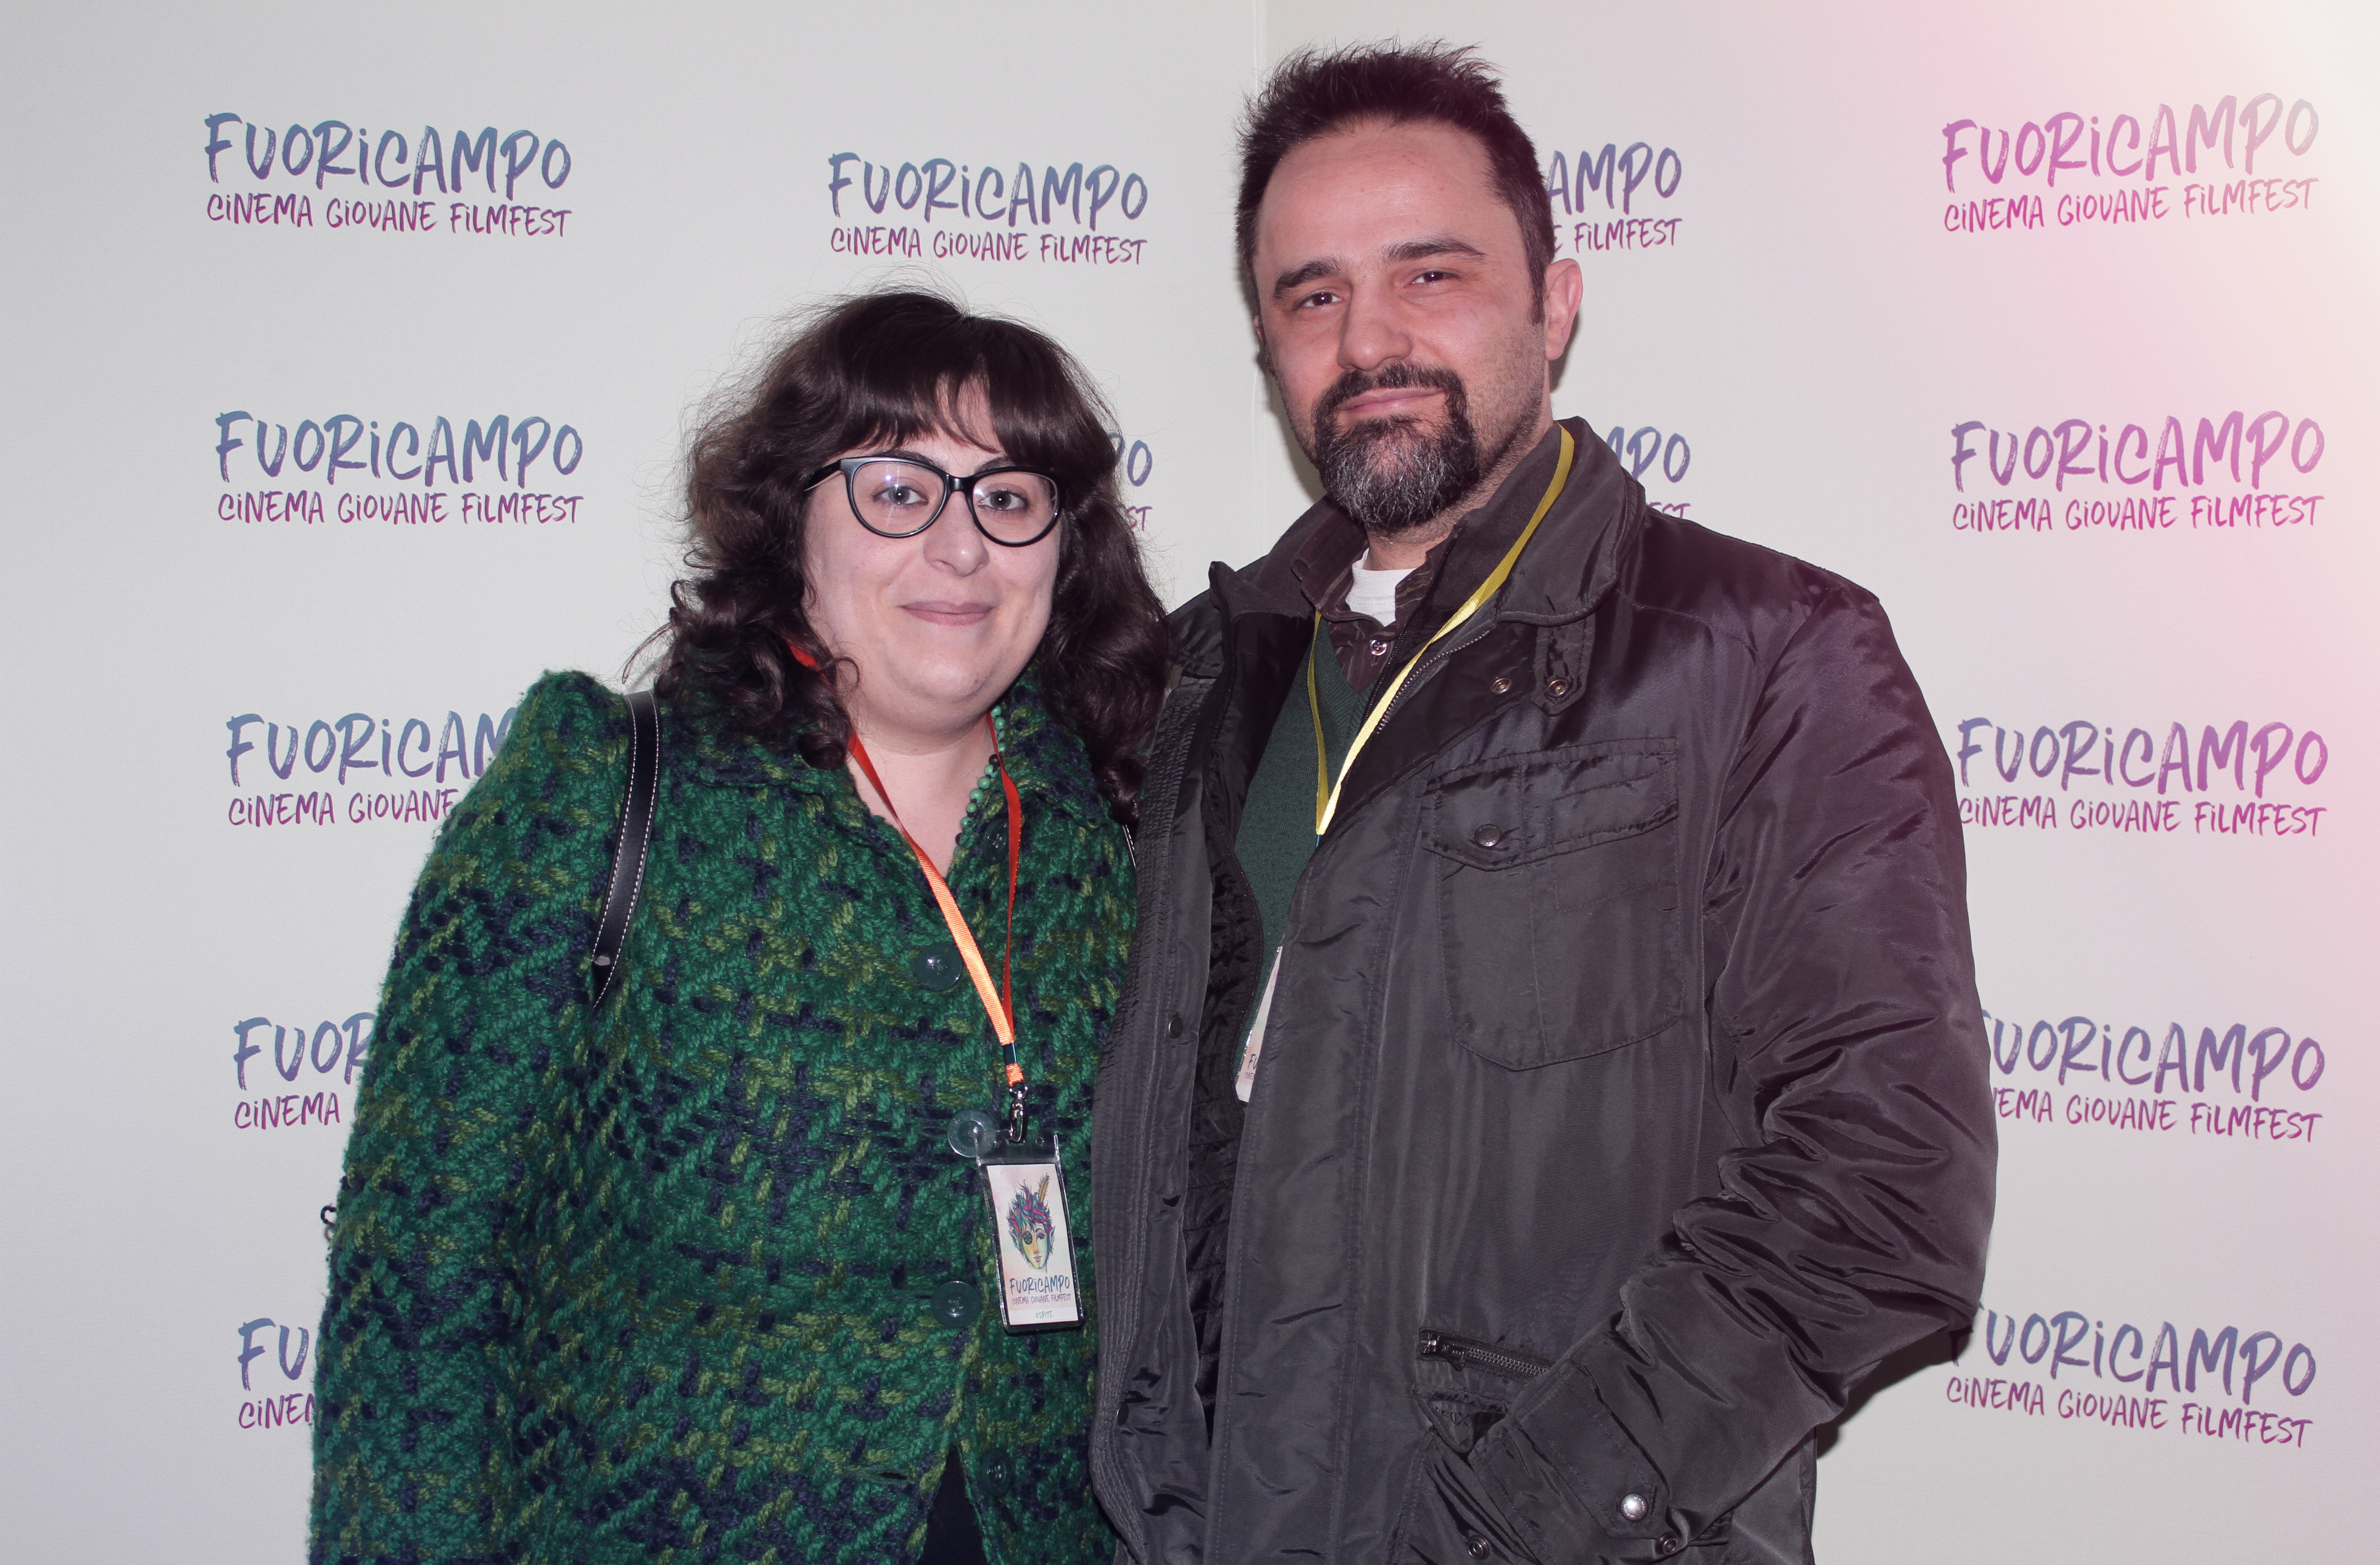 Fuoricampo FilmFest 2018